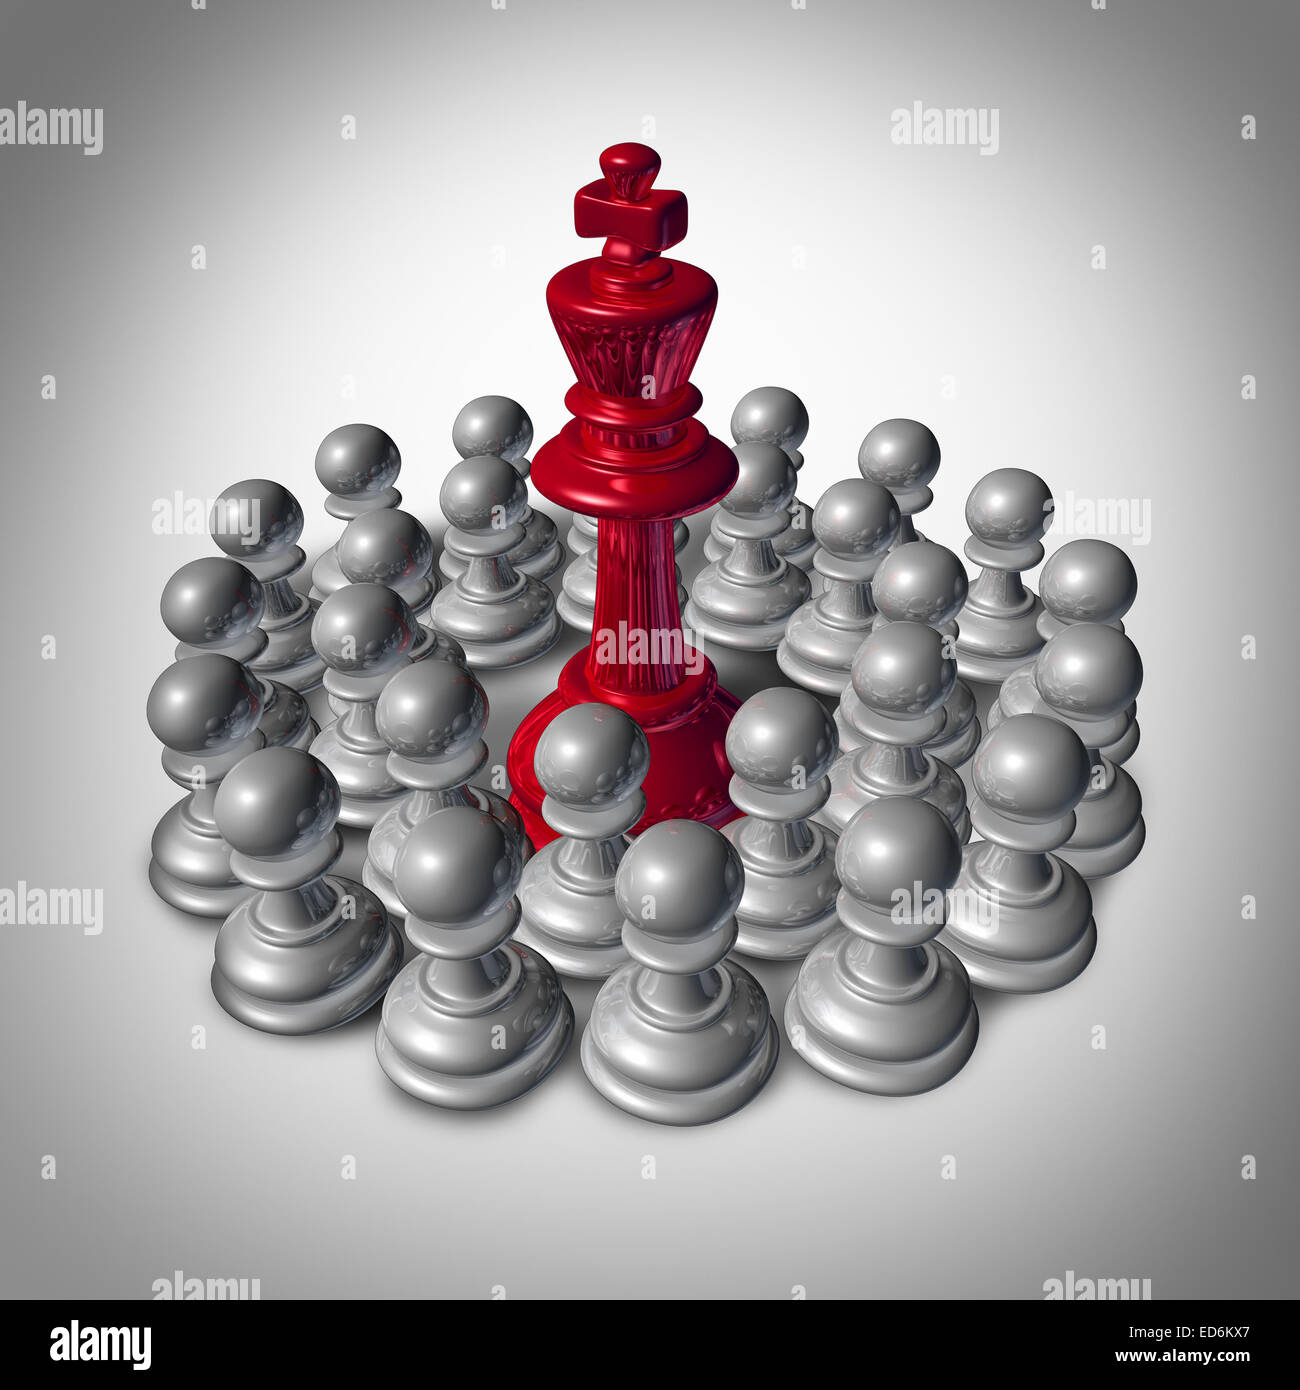 Checkmate business concept and team strategy symbol as an organized group of small chess pawns coming together to - Stock Image